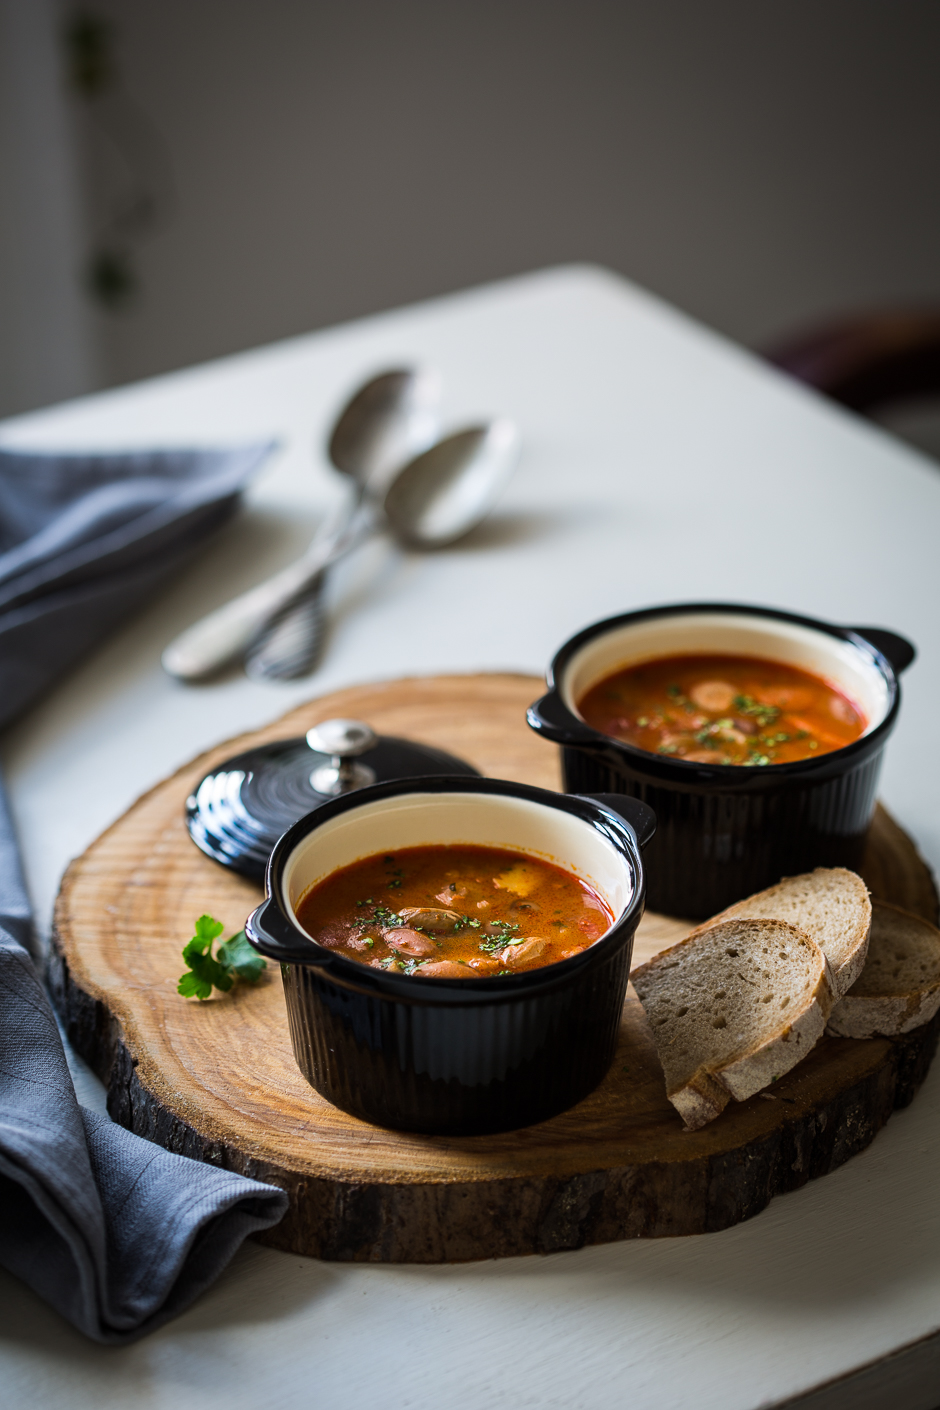 Hungarian bean soup from the Taste of Memories country kitchen www.tasteofmemories.com